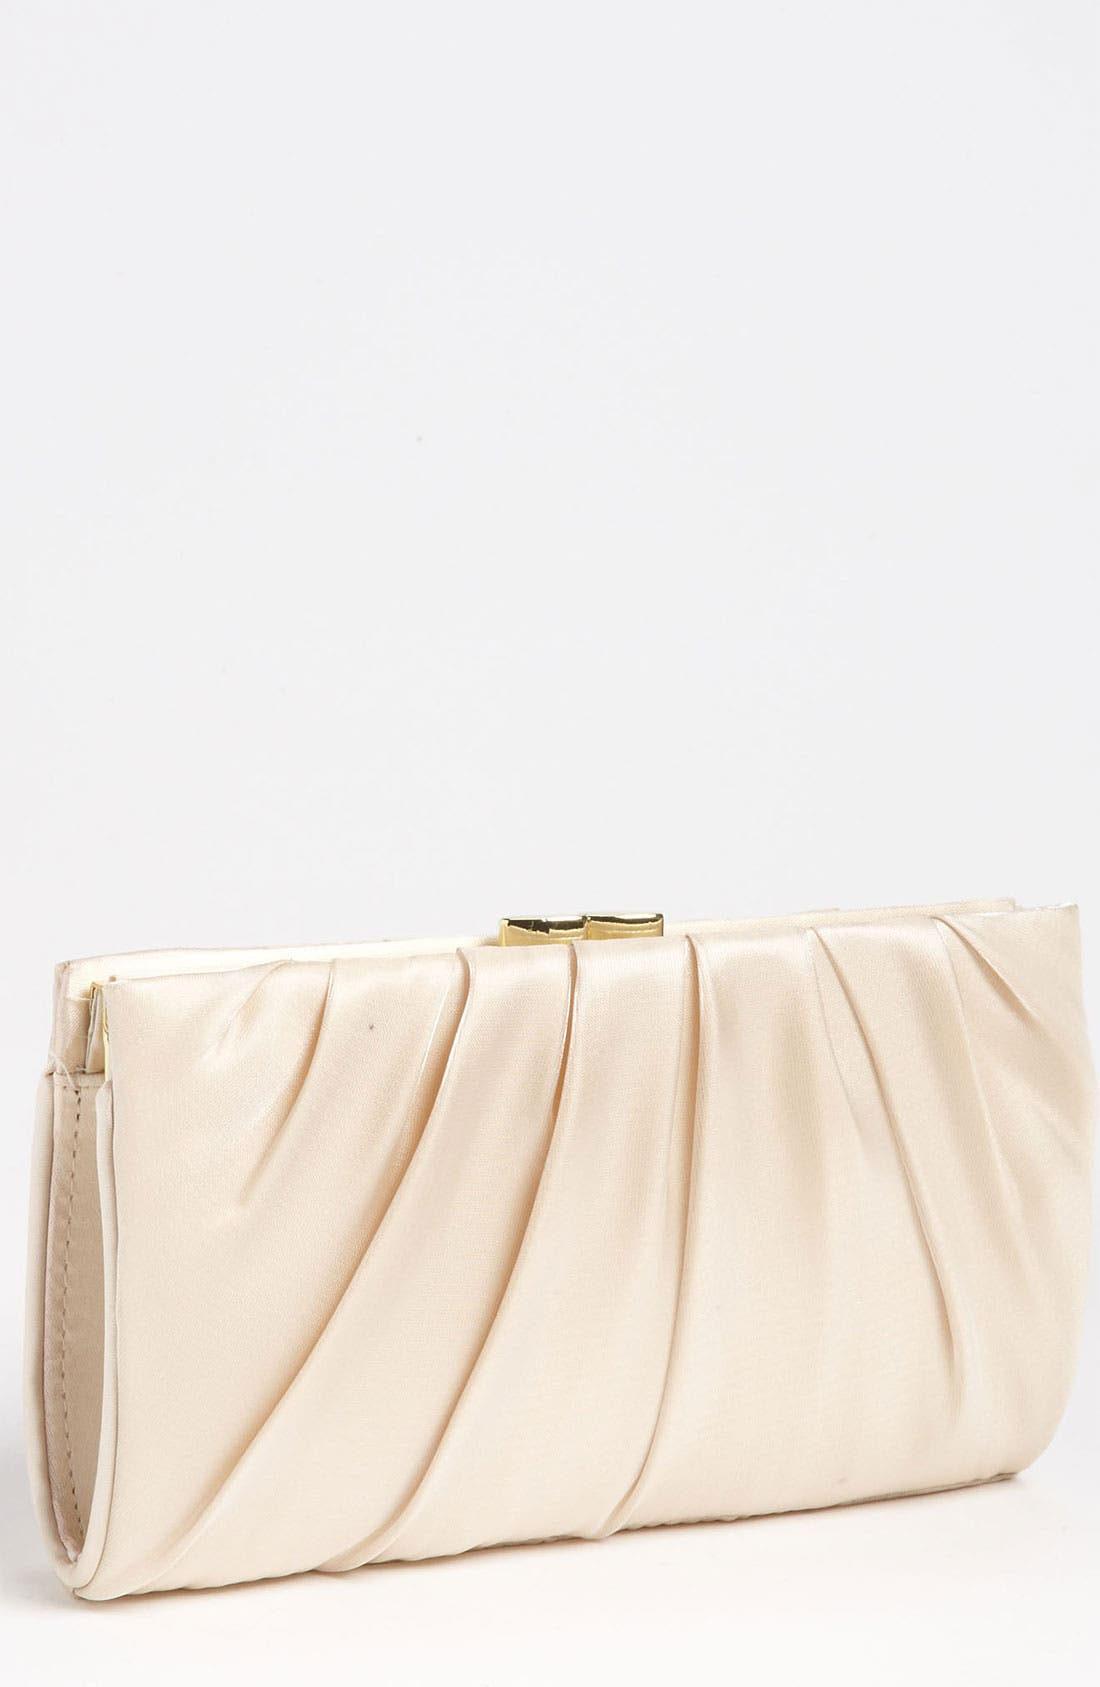 Alternate Image 1 Selected - Nina 'Larry' Satin Clutch